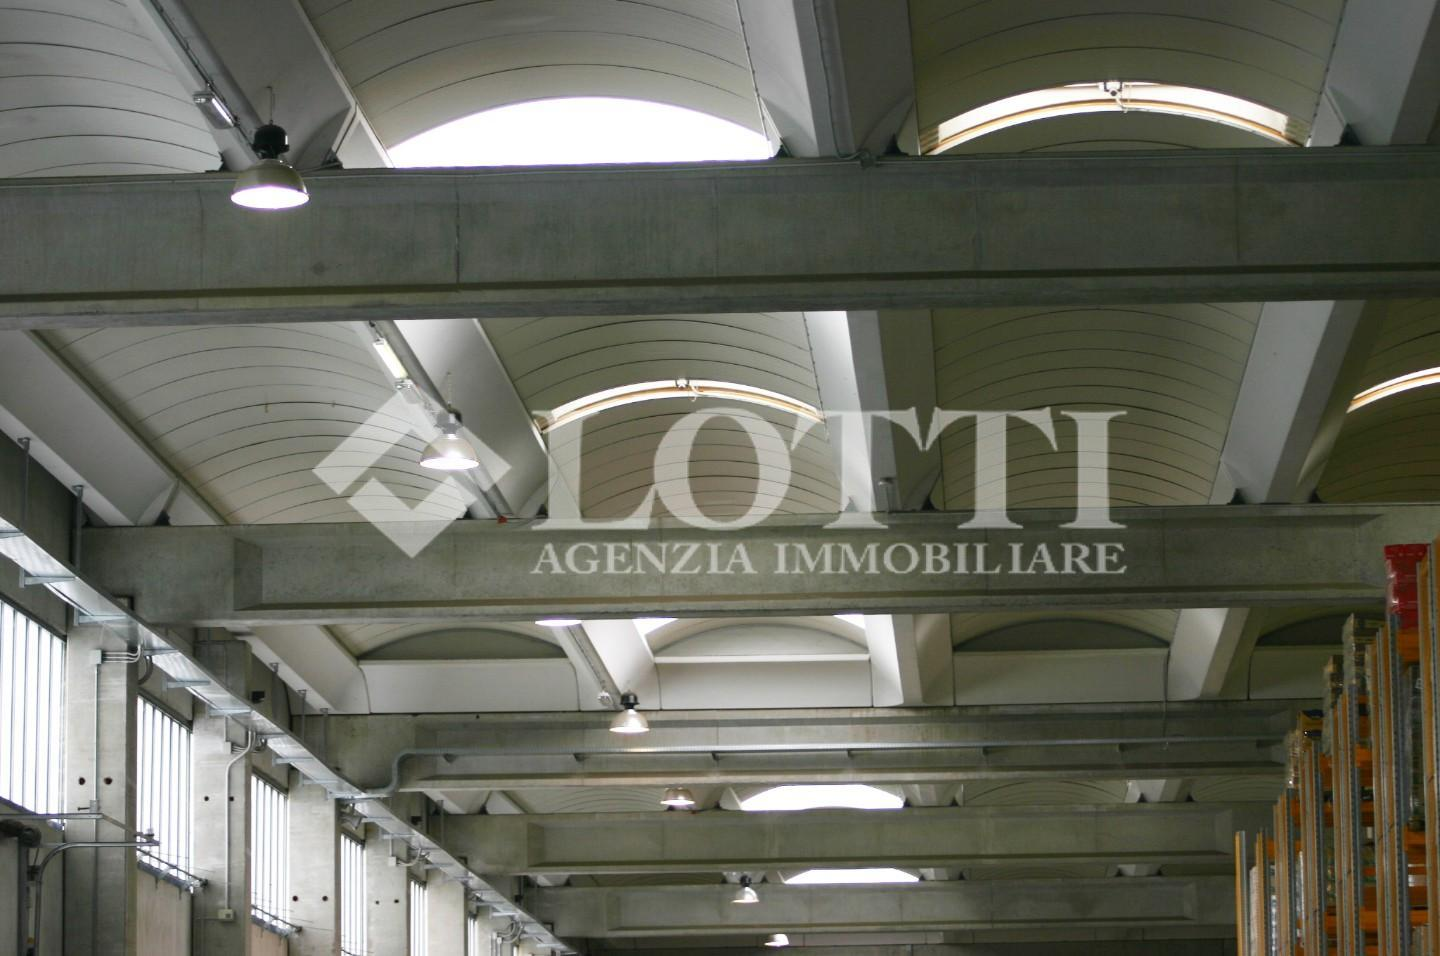 Capannone industriale in affitto commerciale, rif. 725-B